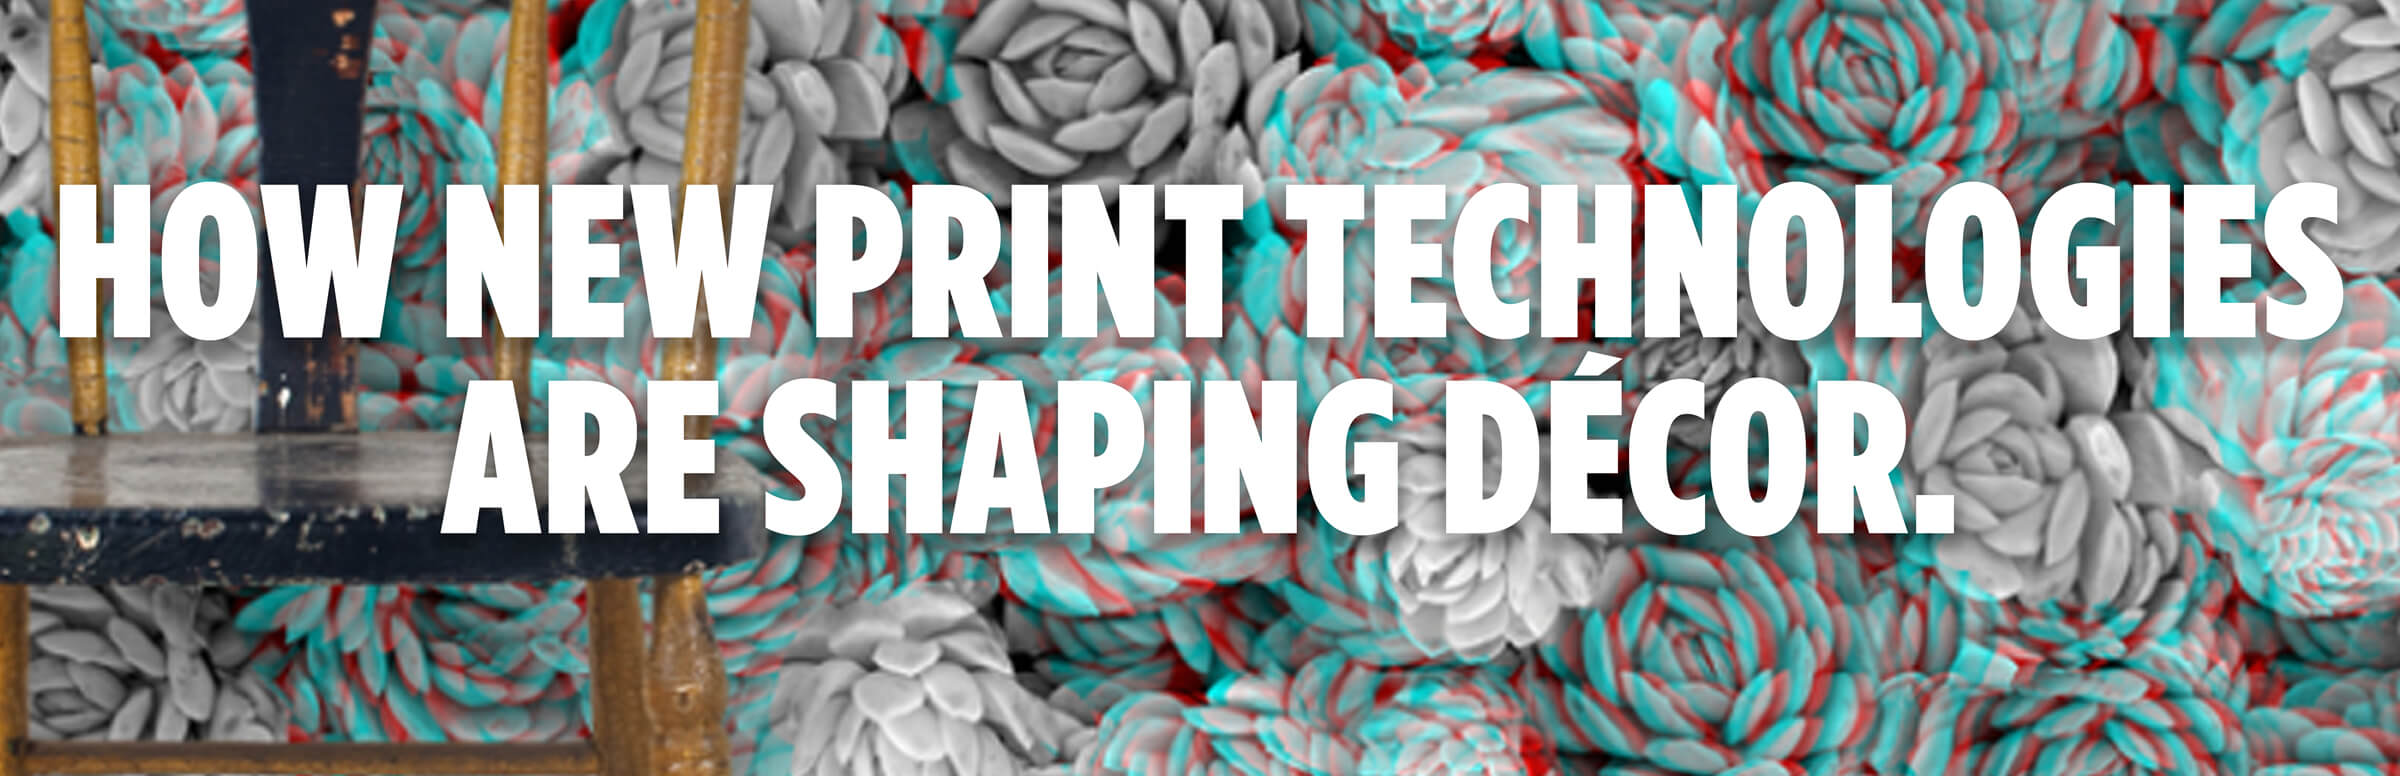 How New Print Technologies Are Shaping Decor